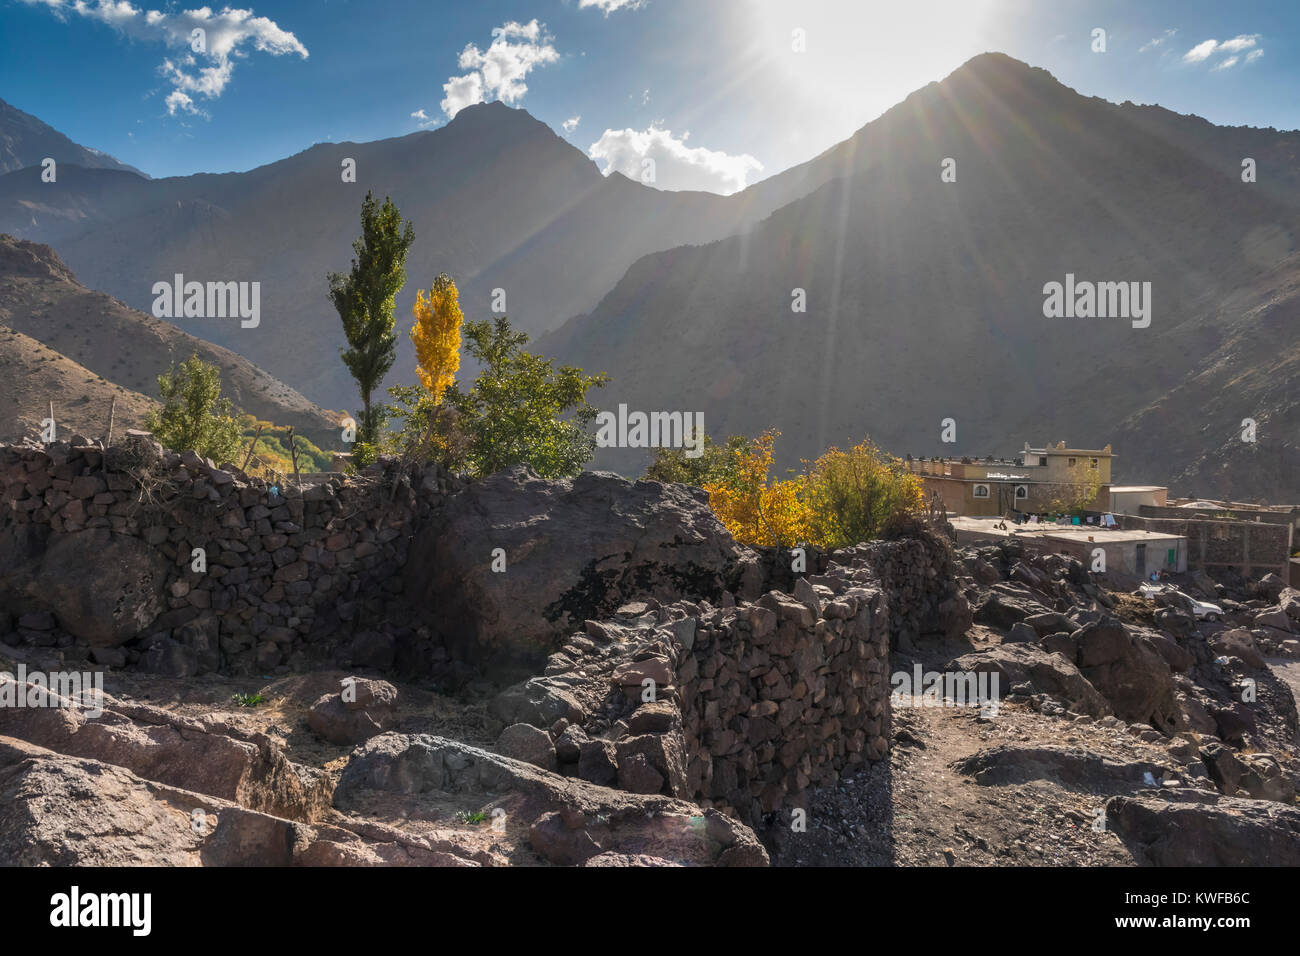 View of Aremd, Imili Valley, woth autumnal coloured Poplar trees, Moroccan High Atlas. - Stock Image